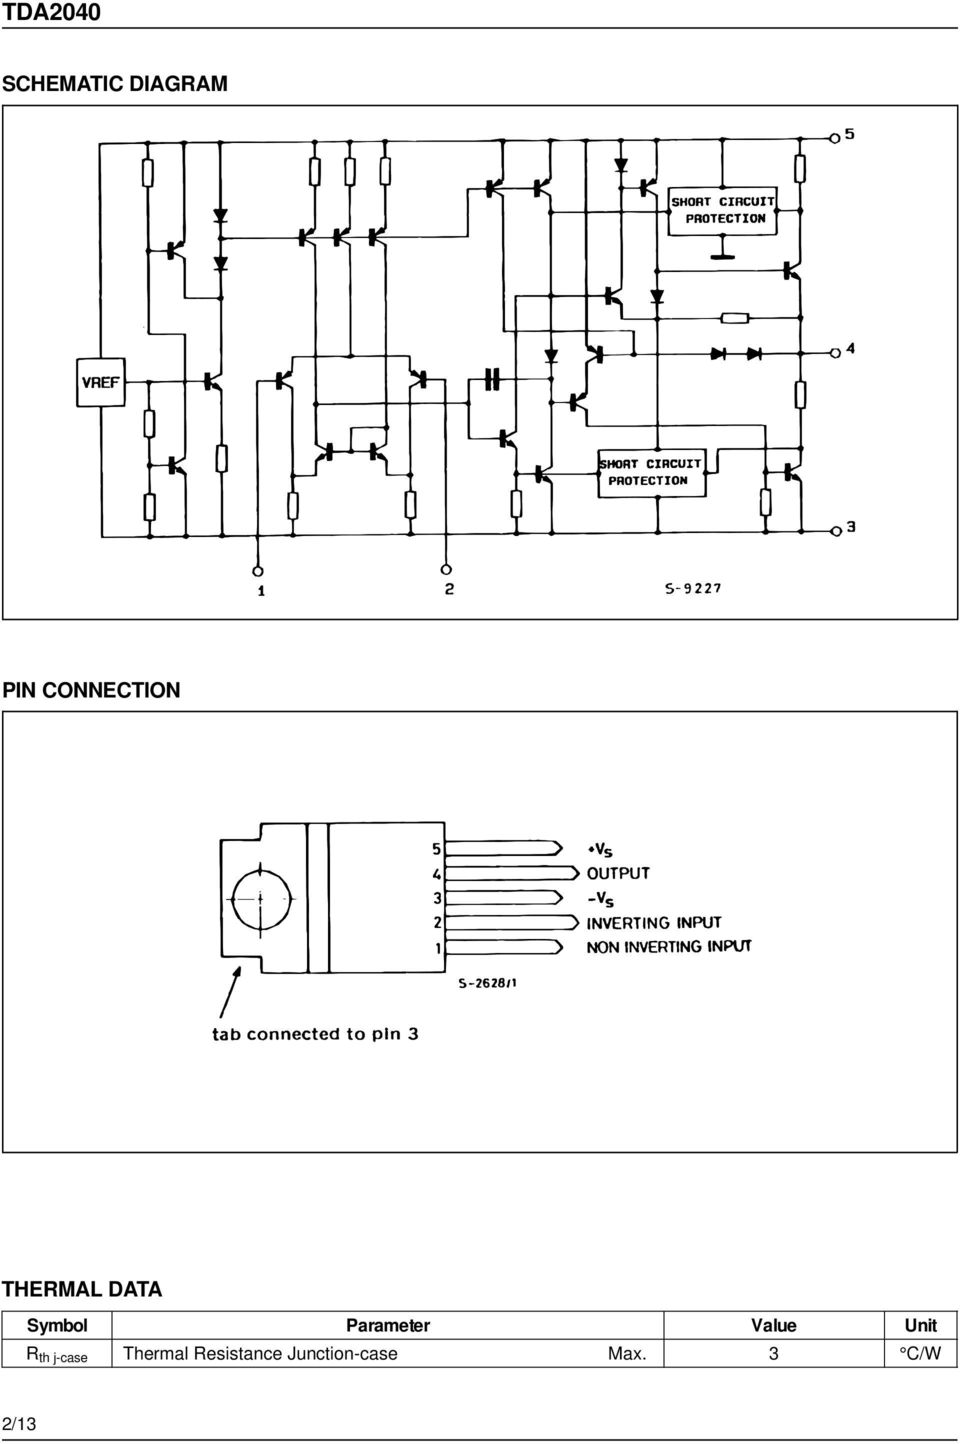 Tda W Hi Fi Audio Power Amplifier Pdf How To Build Your Own 10watt Using An Ic 2003 Value Unit R Th J Case Thermal